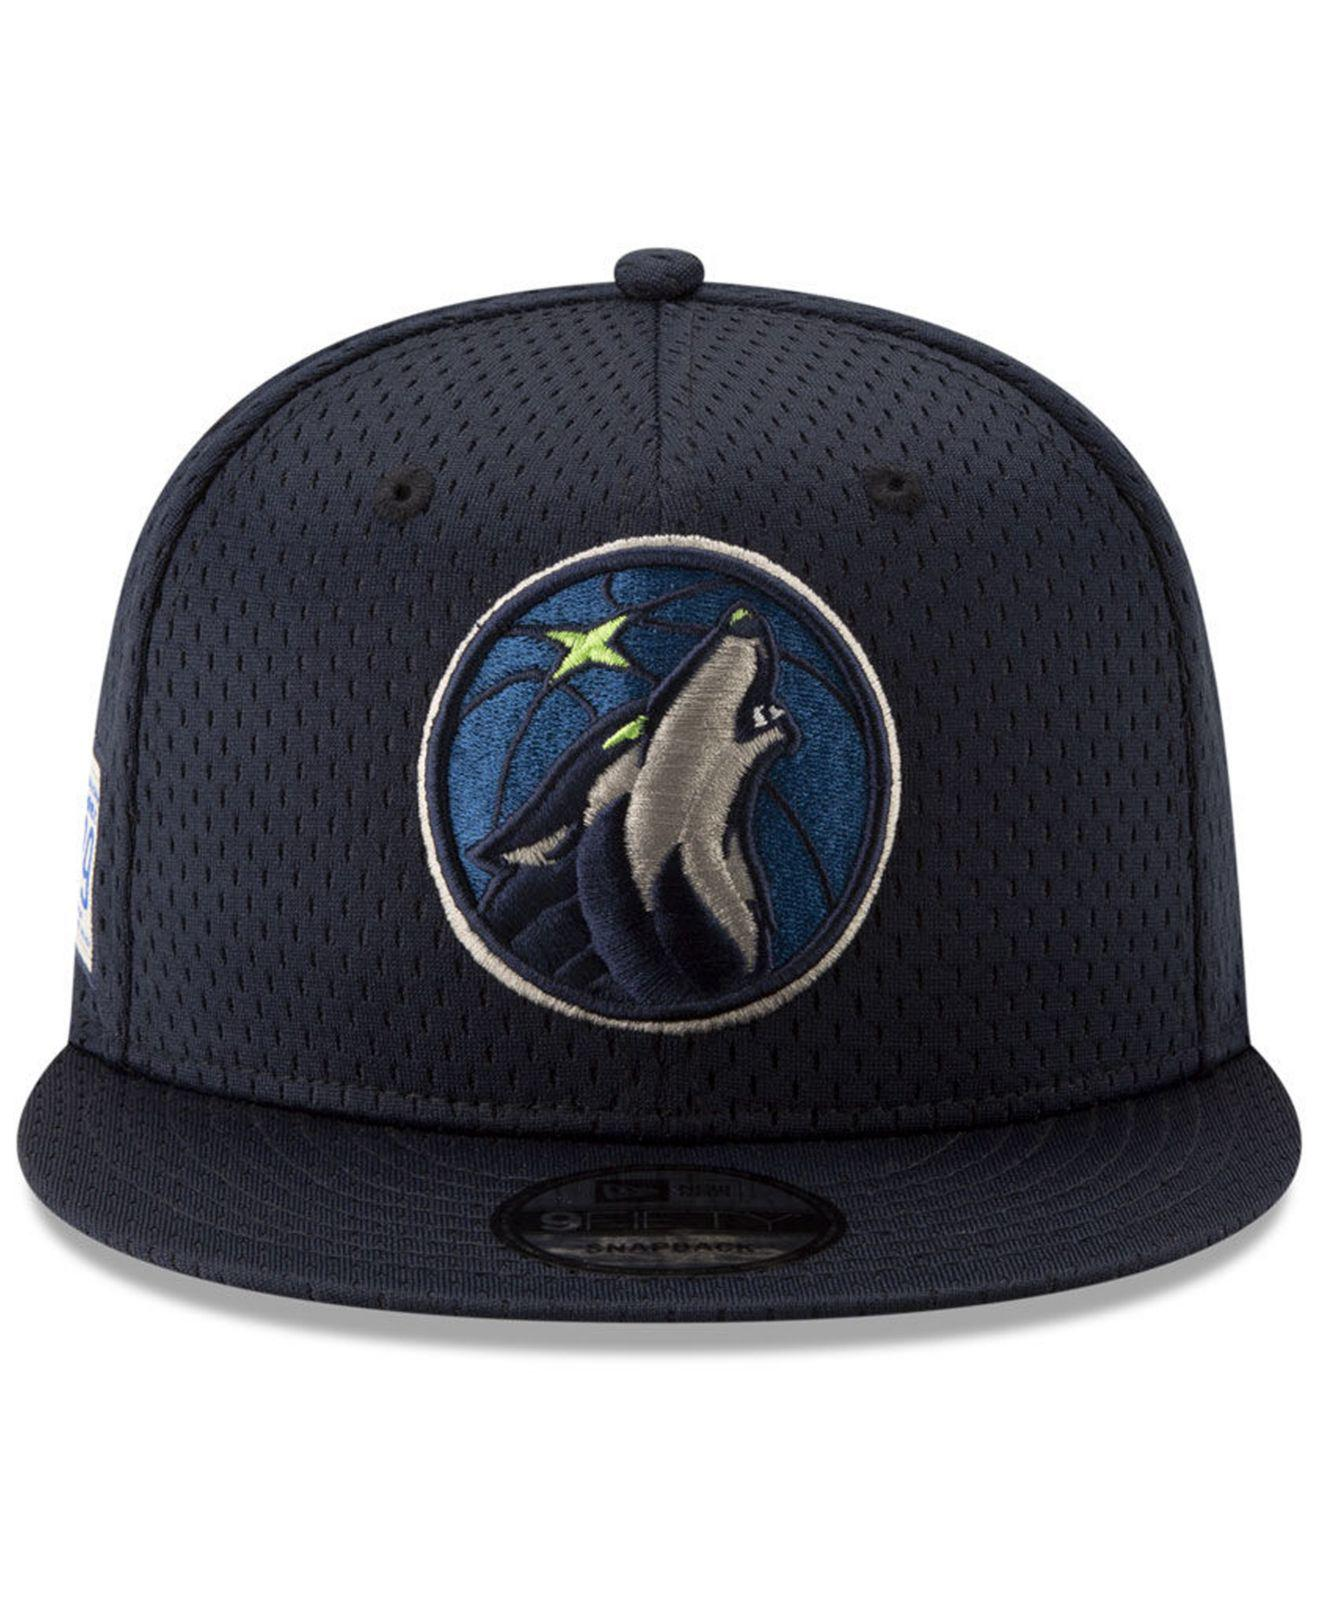 sports shoes 7a03f 27607 ... promo code for lyst ktz minnesota timberwolves jock tag 9fifty snapback  cap in blue for men